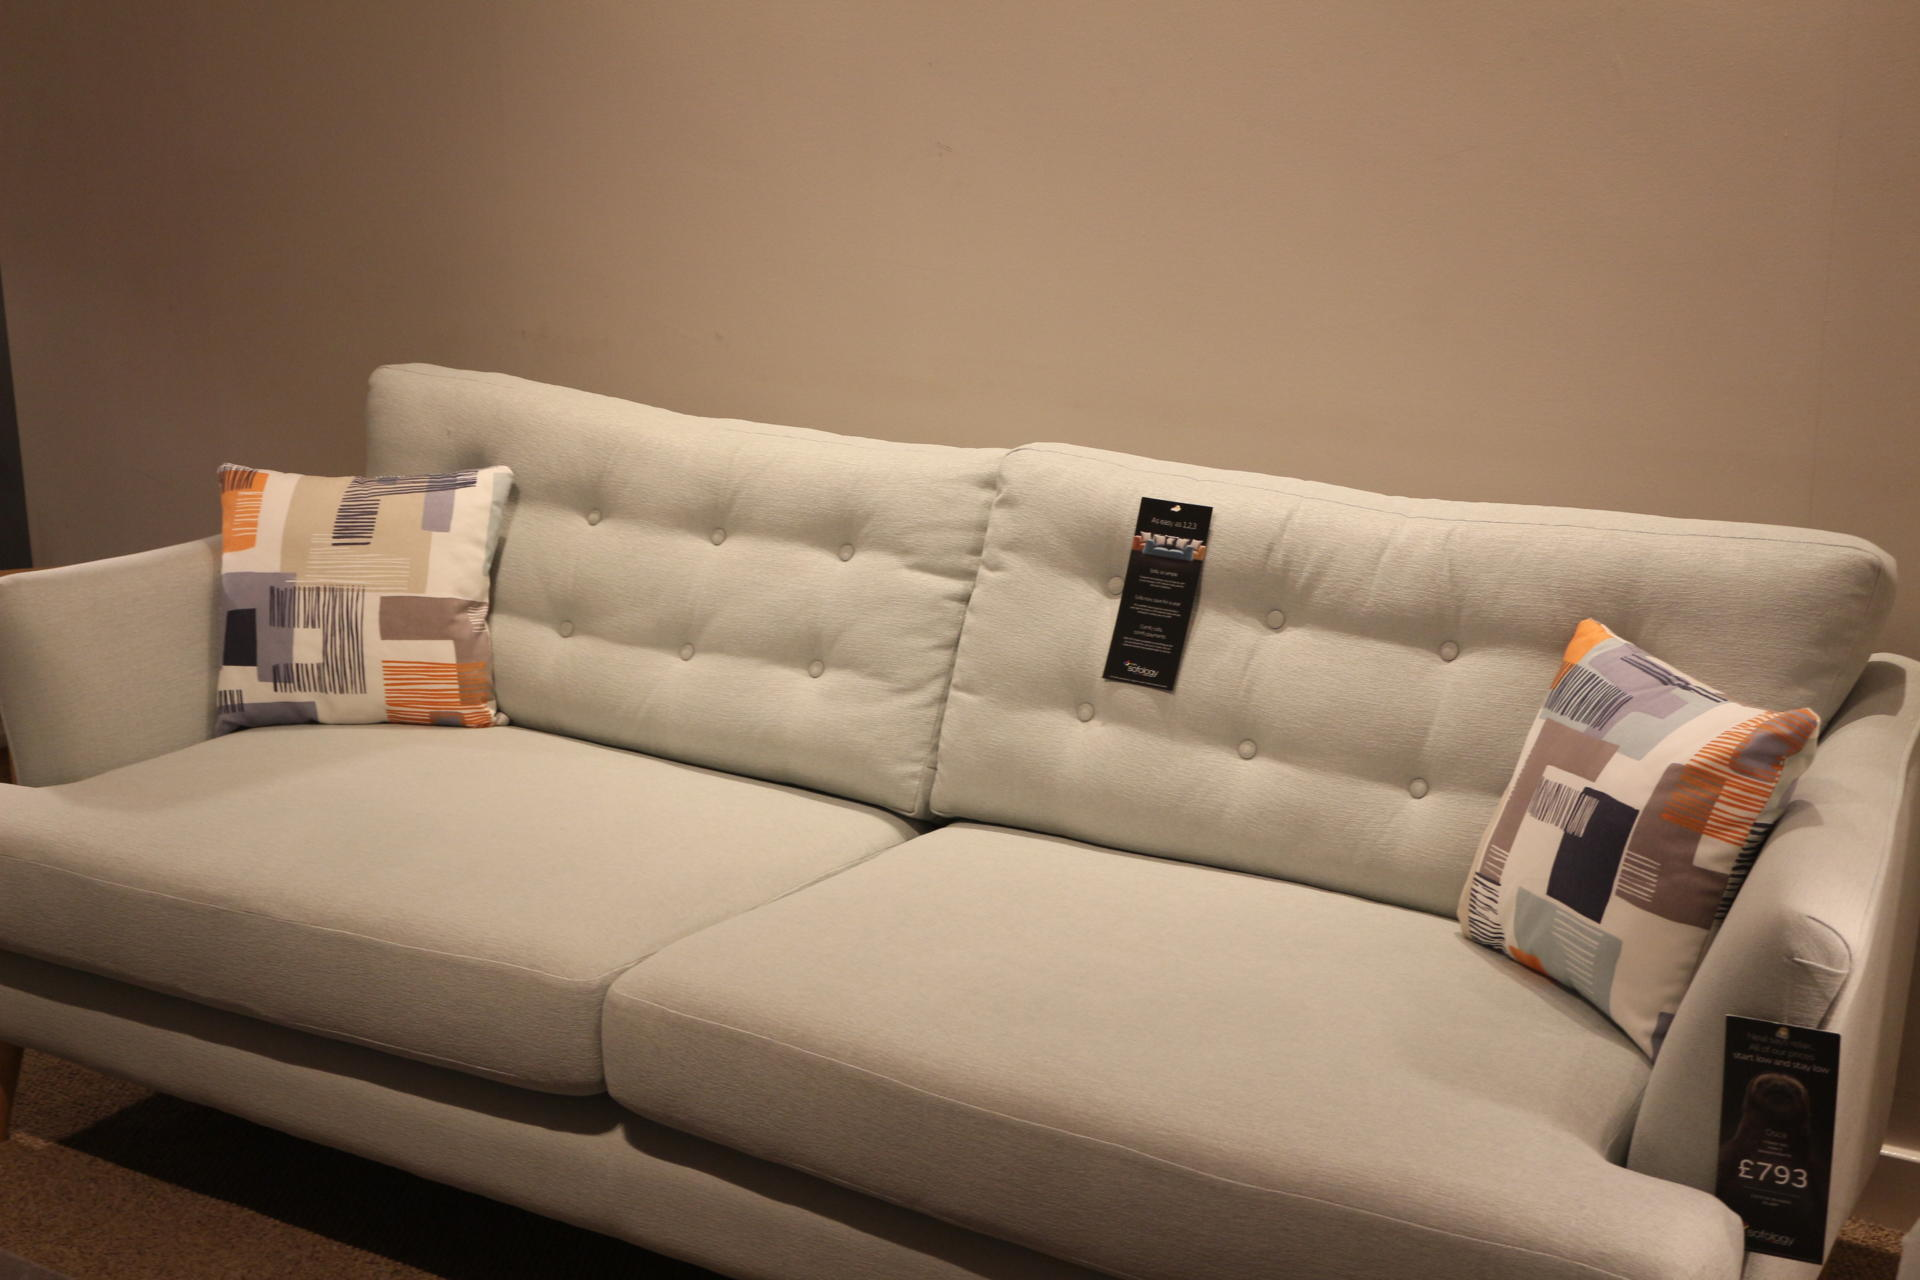 Big Sofa Osca My Sofology Manchester Experience Sofa Ordering And Delivery